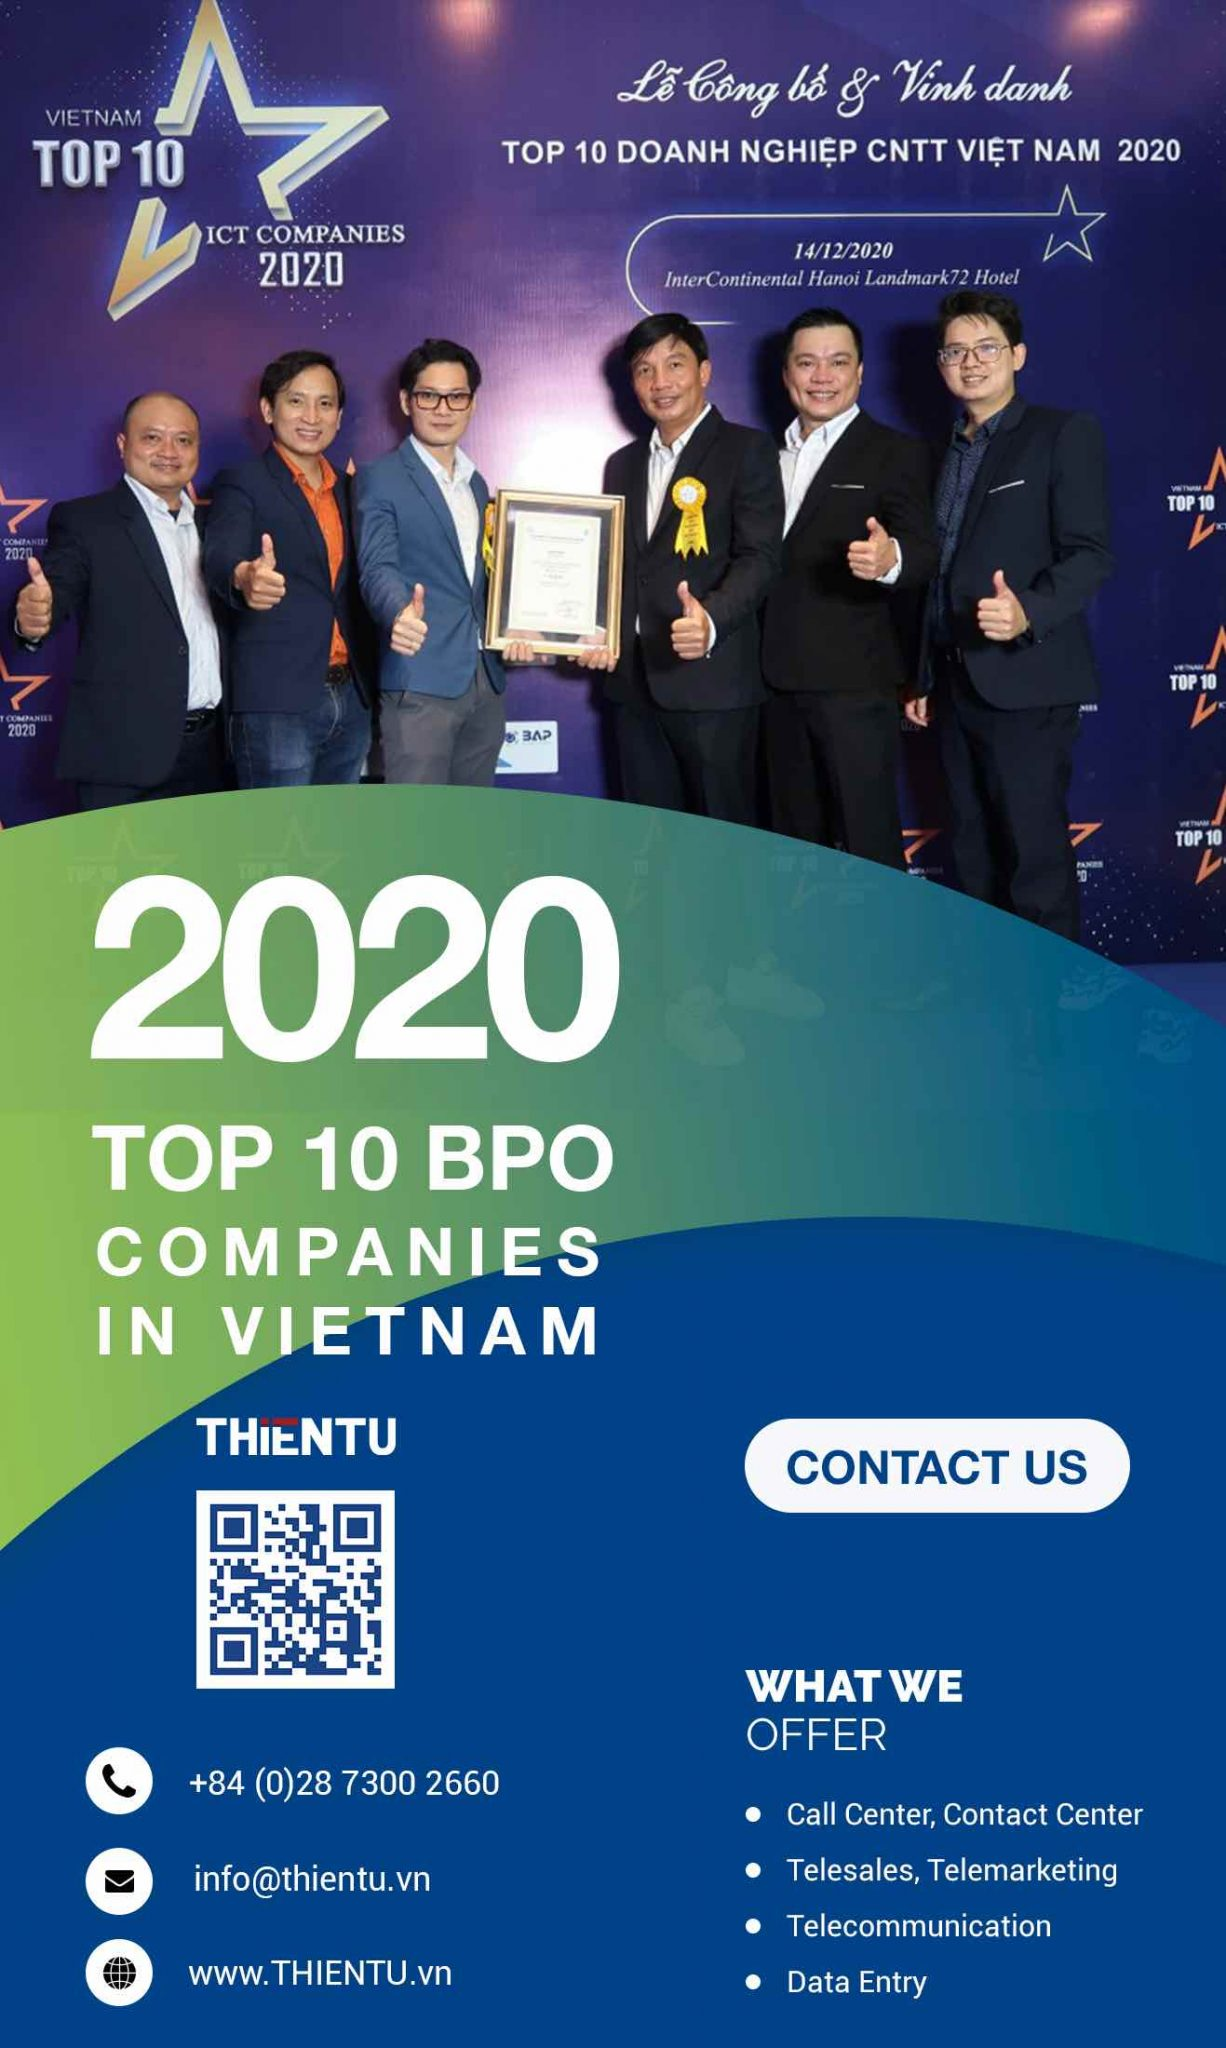 Top 10 BPO Companies in Vietnam